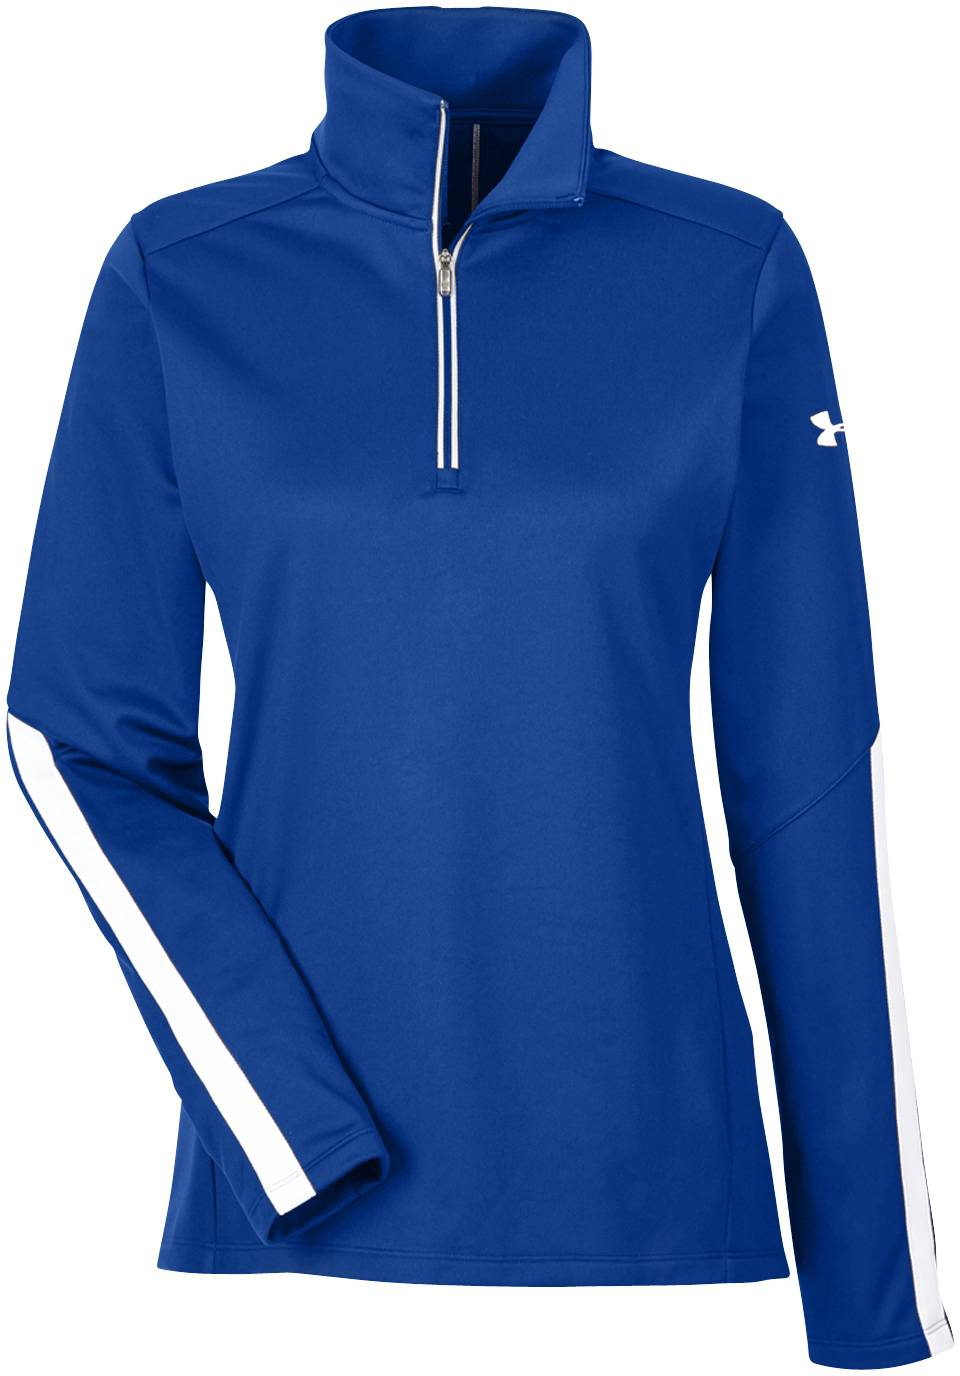 Under armour women 39 s corporate qualifier 1 4 zip for Under armor business shirts